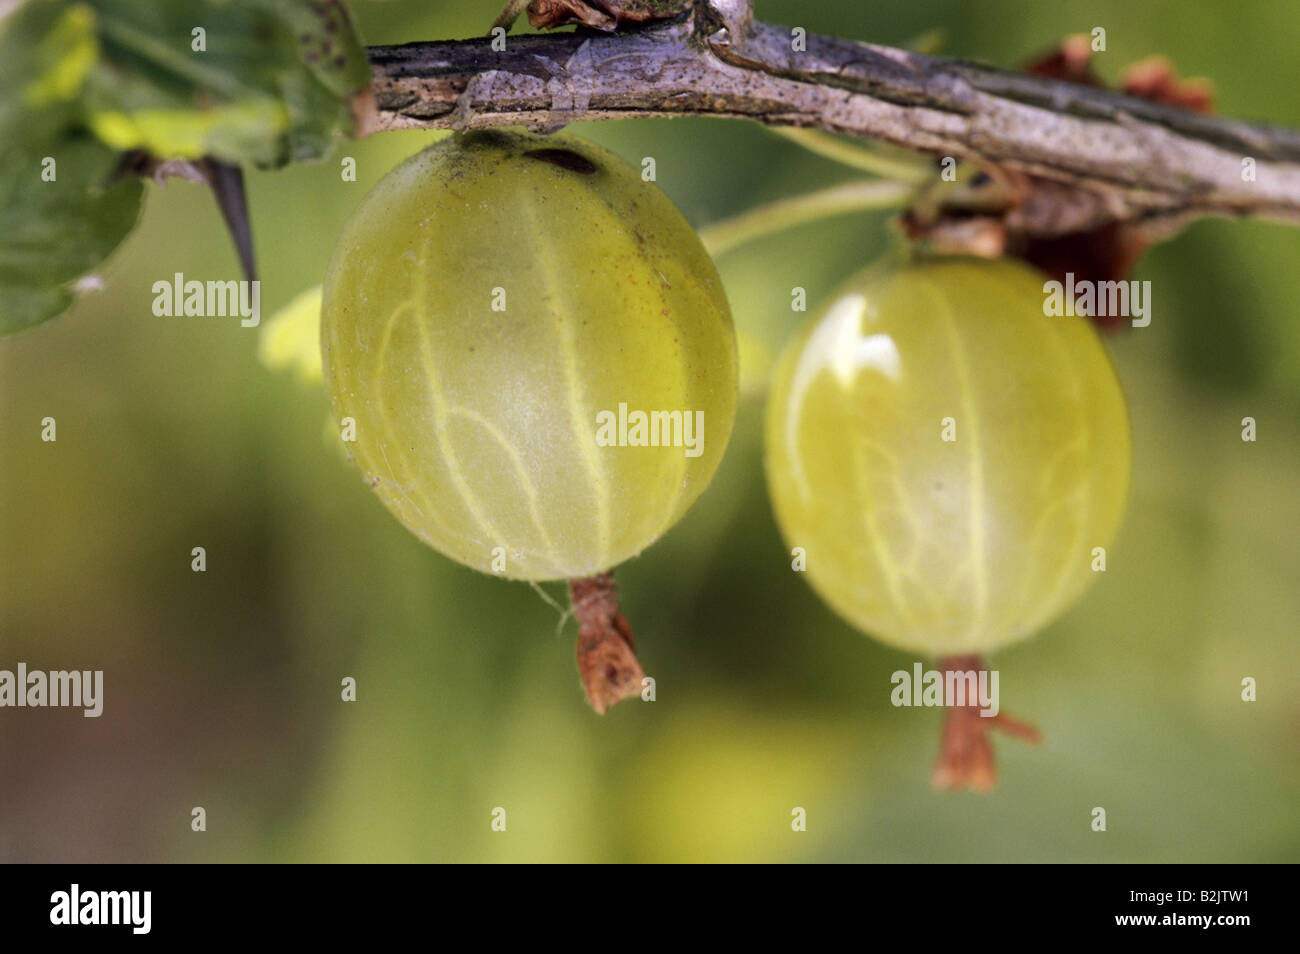 botany, Gooseberry, (Ribes uva-crispa), gooseberries at branch, Additional-Rights-Clearance-Info-Not-Available - Stock Image